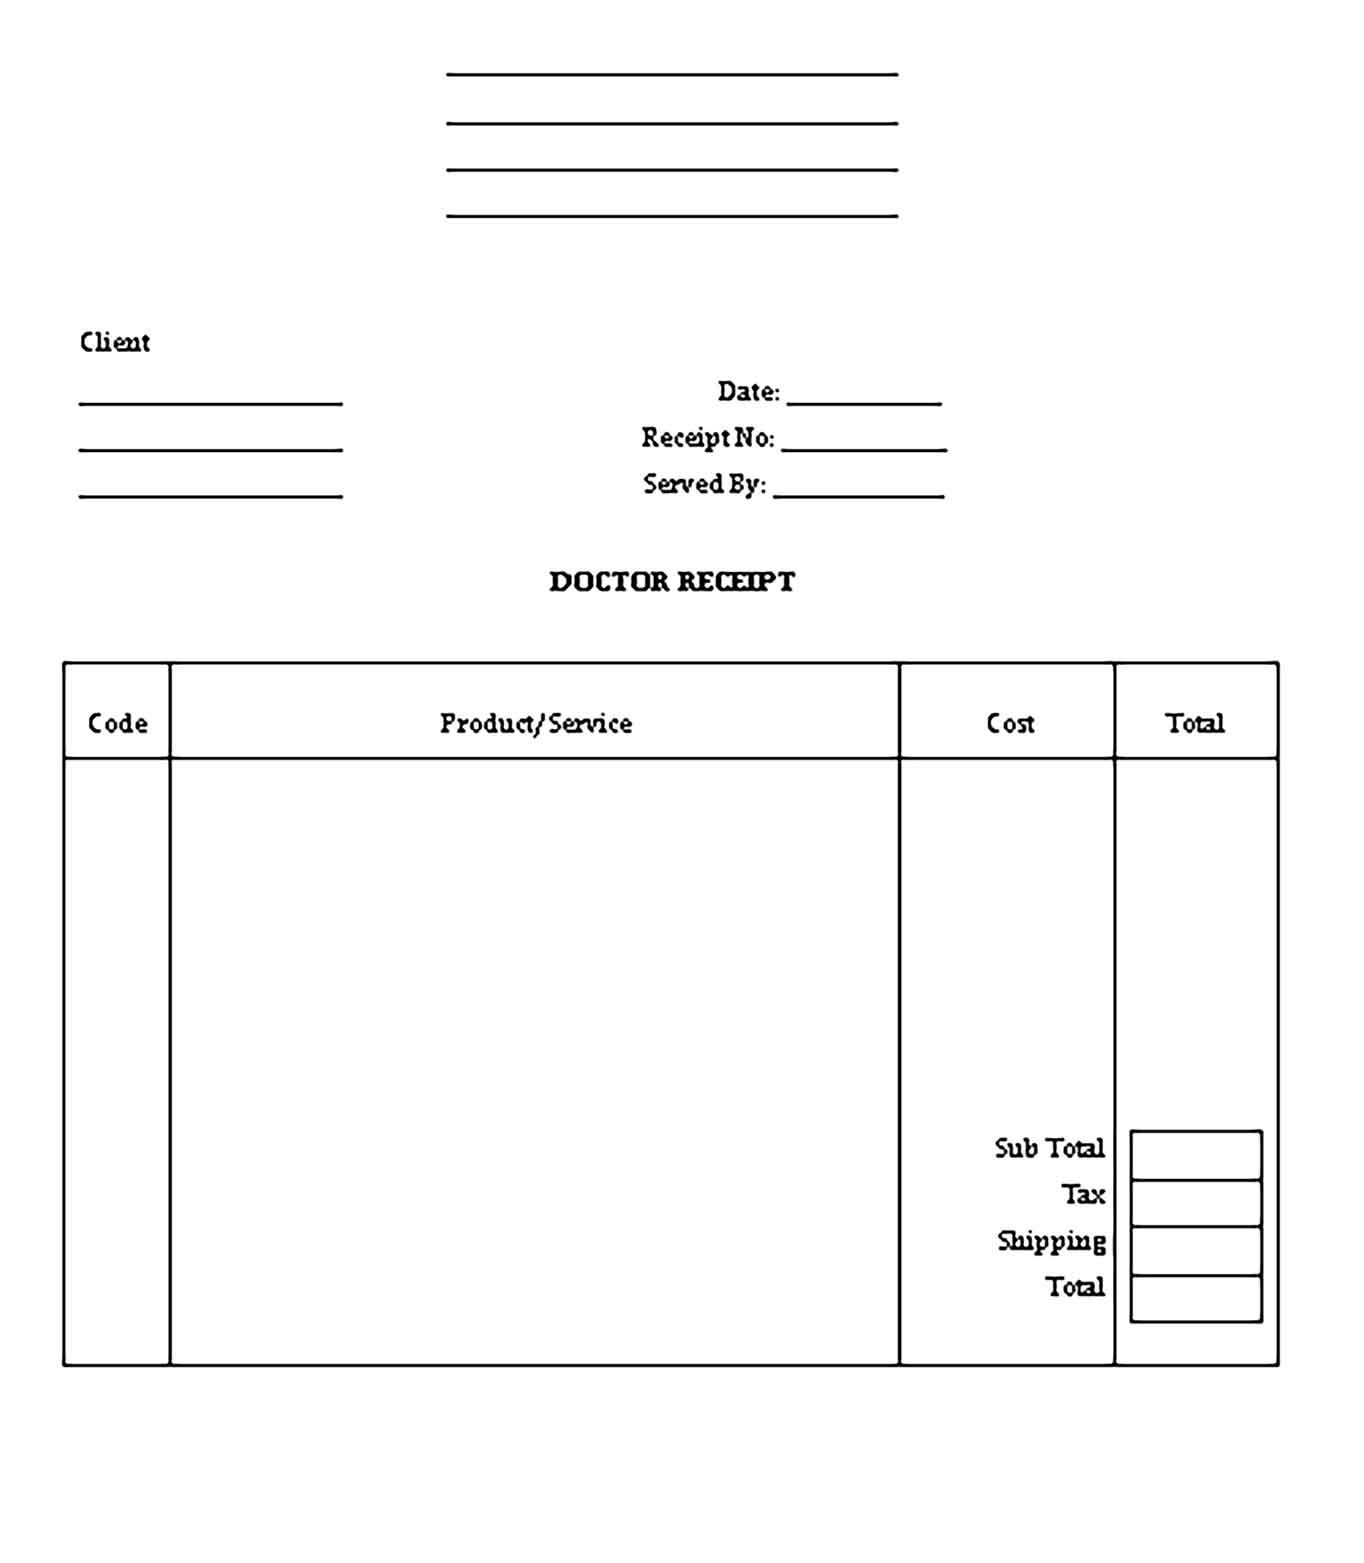 Printable Doctor Receipt Template In